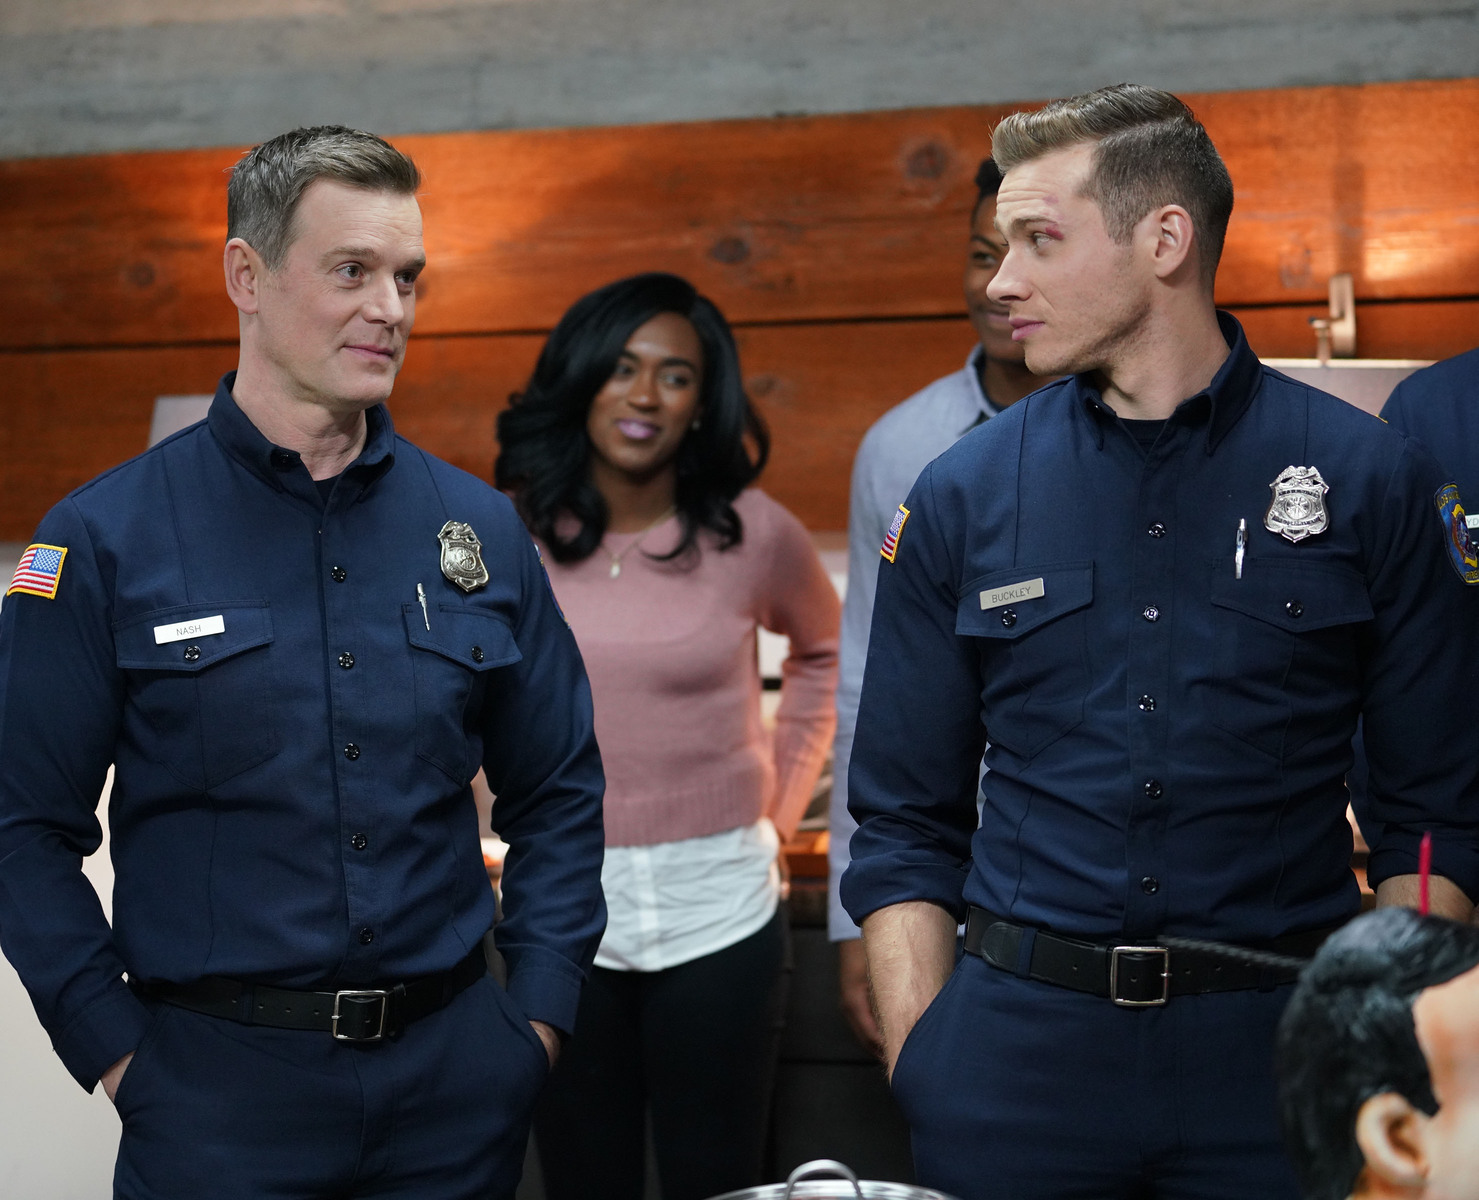 Peter Krause and Oliver Stark in 9-1-1 (2018)